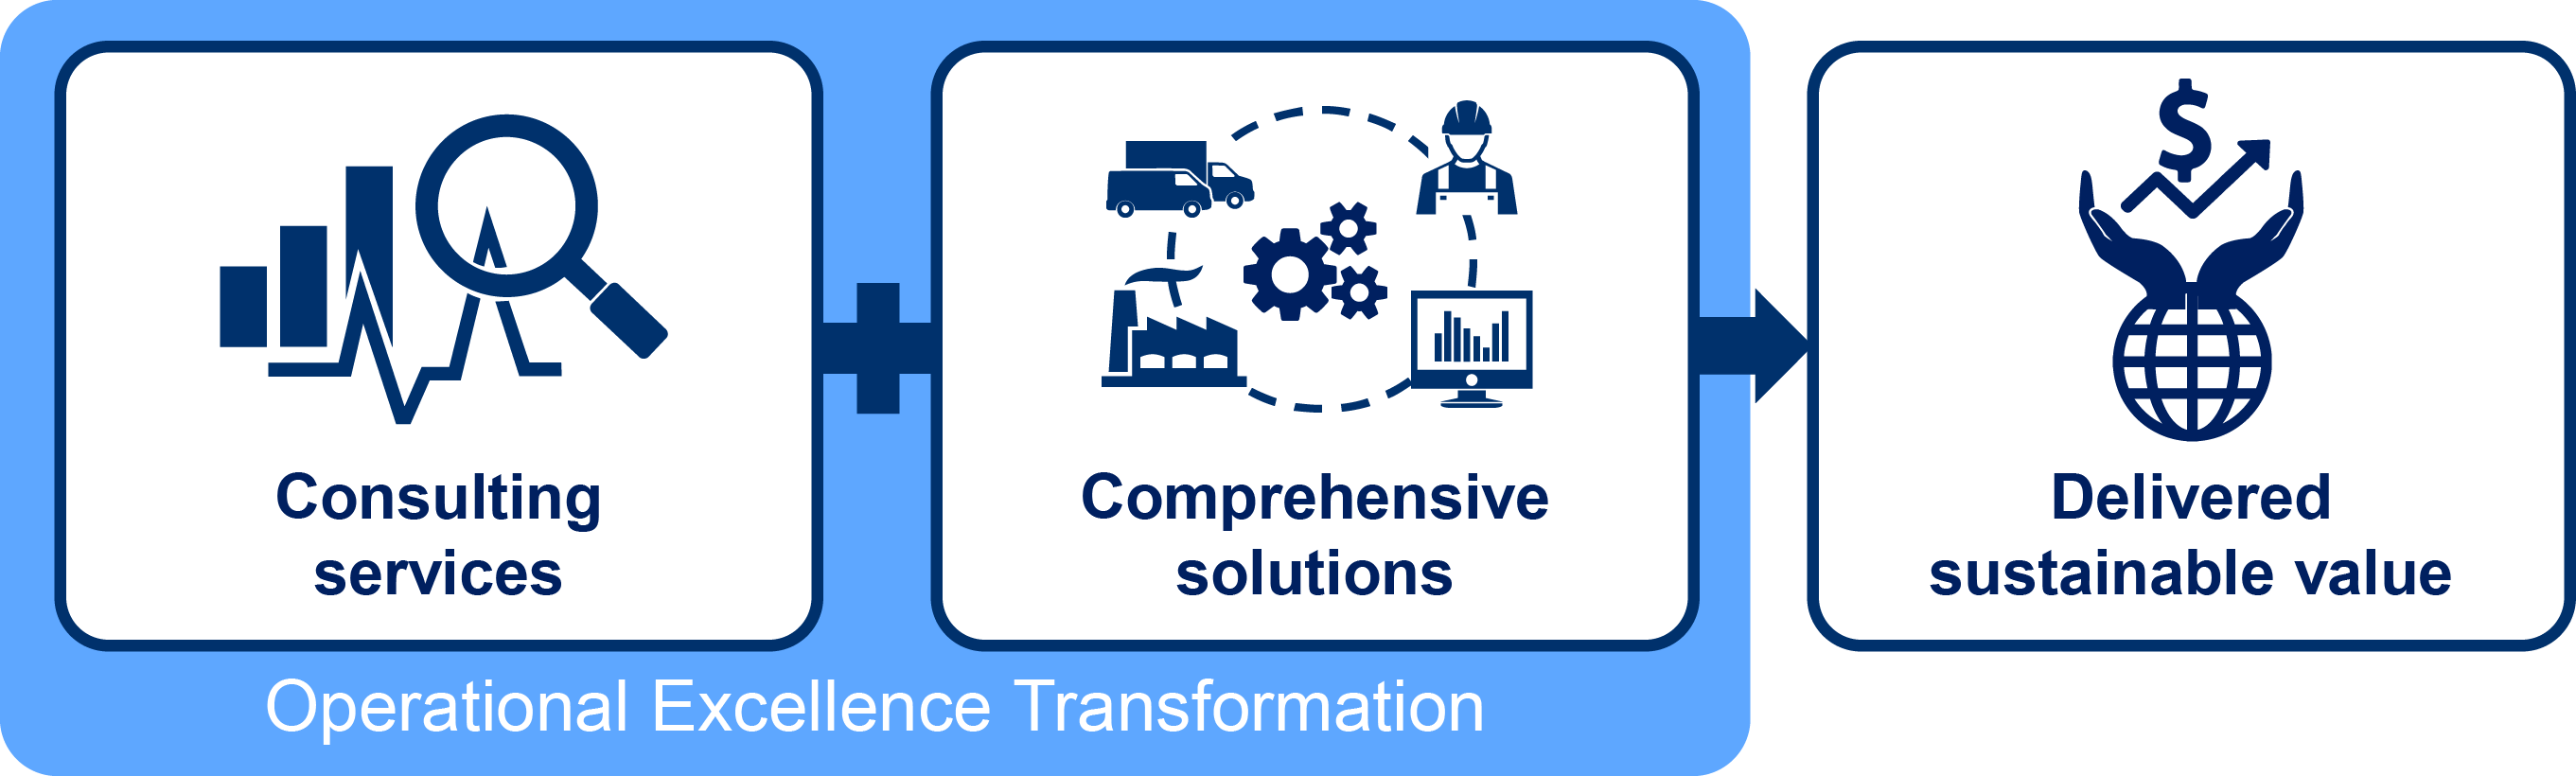 operational excellence transformation by KBC